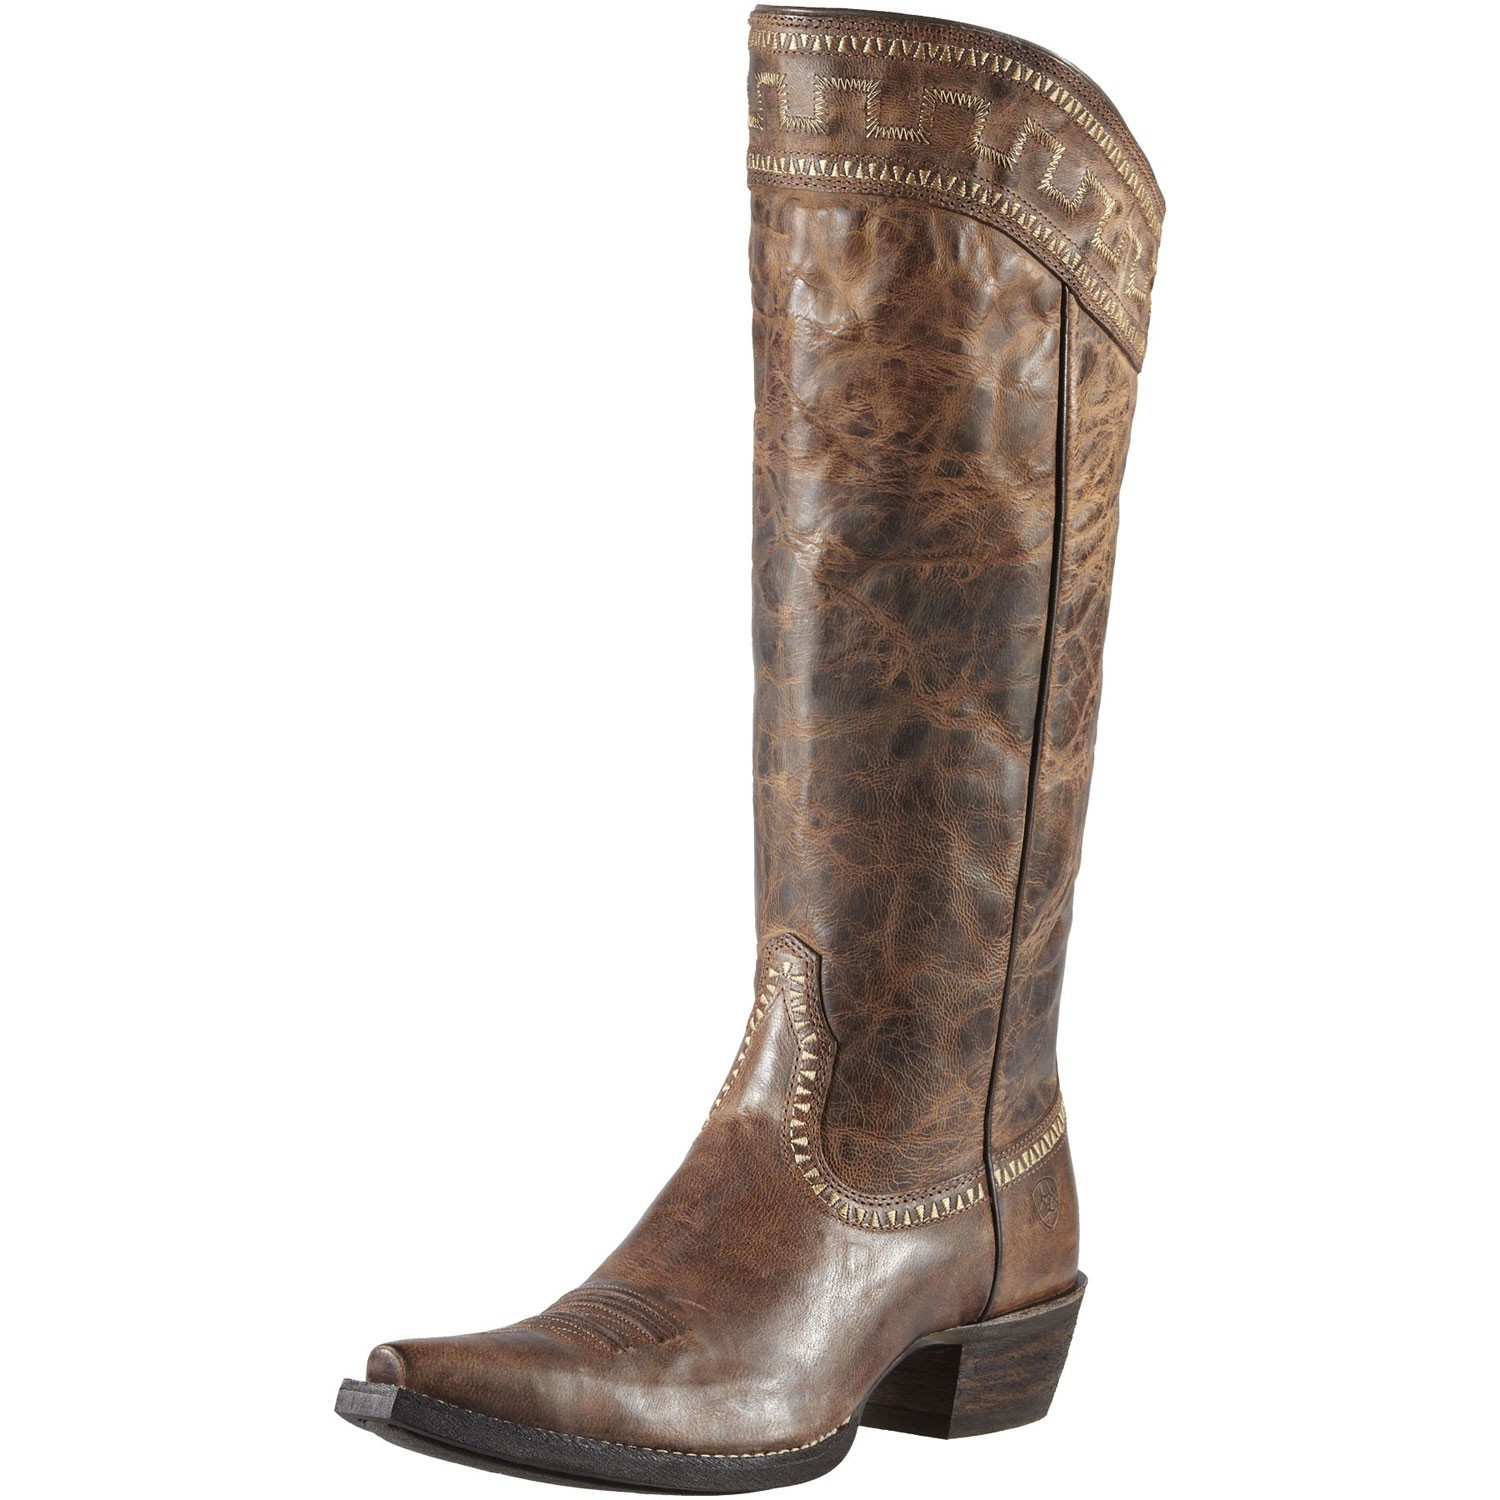 Ariat Boots On Sale k0LdSTRA